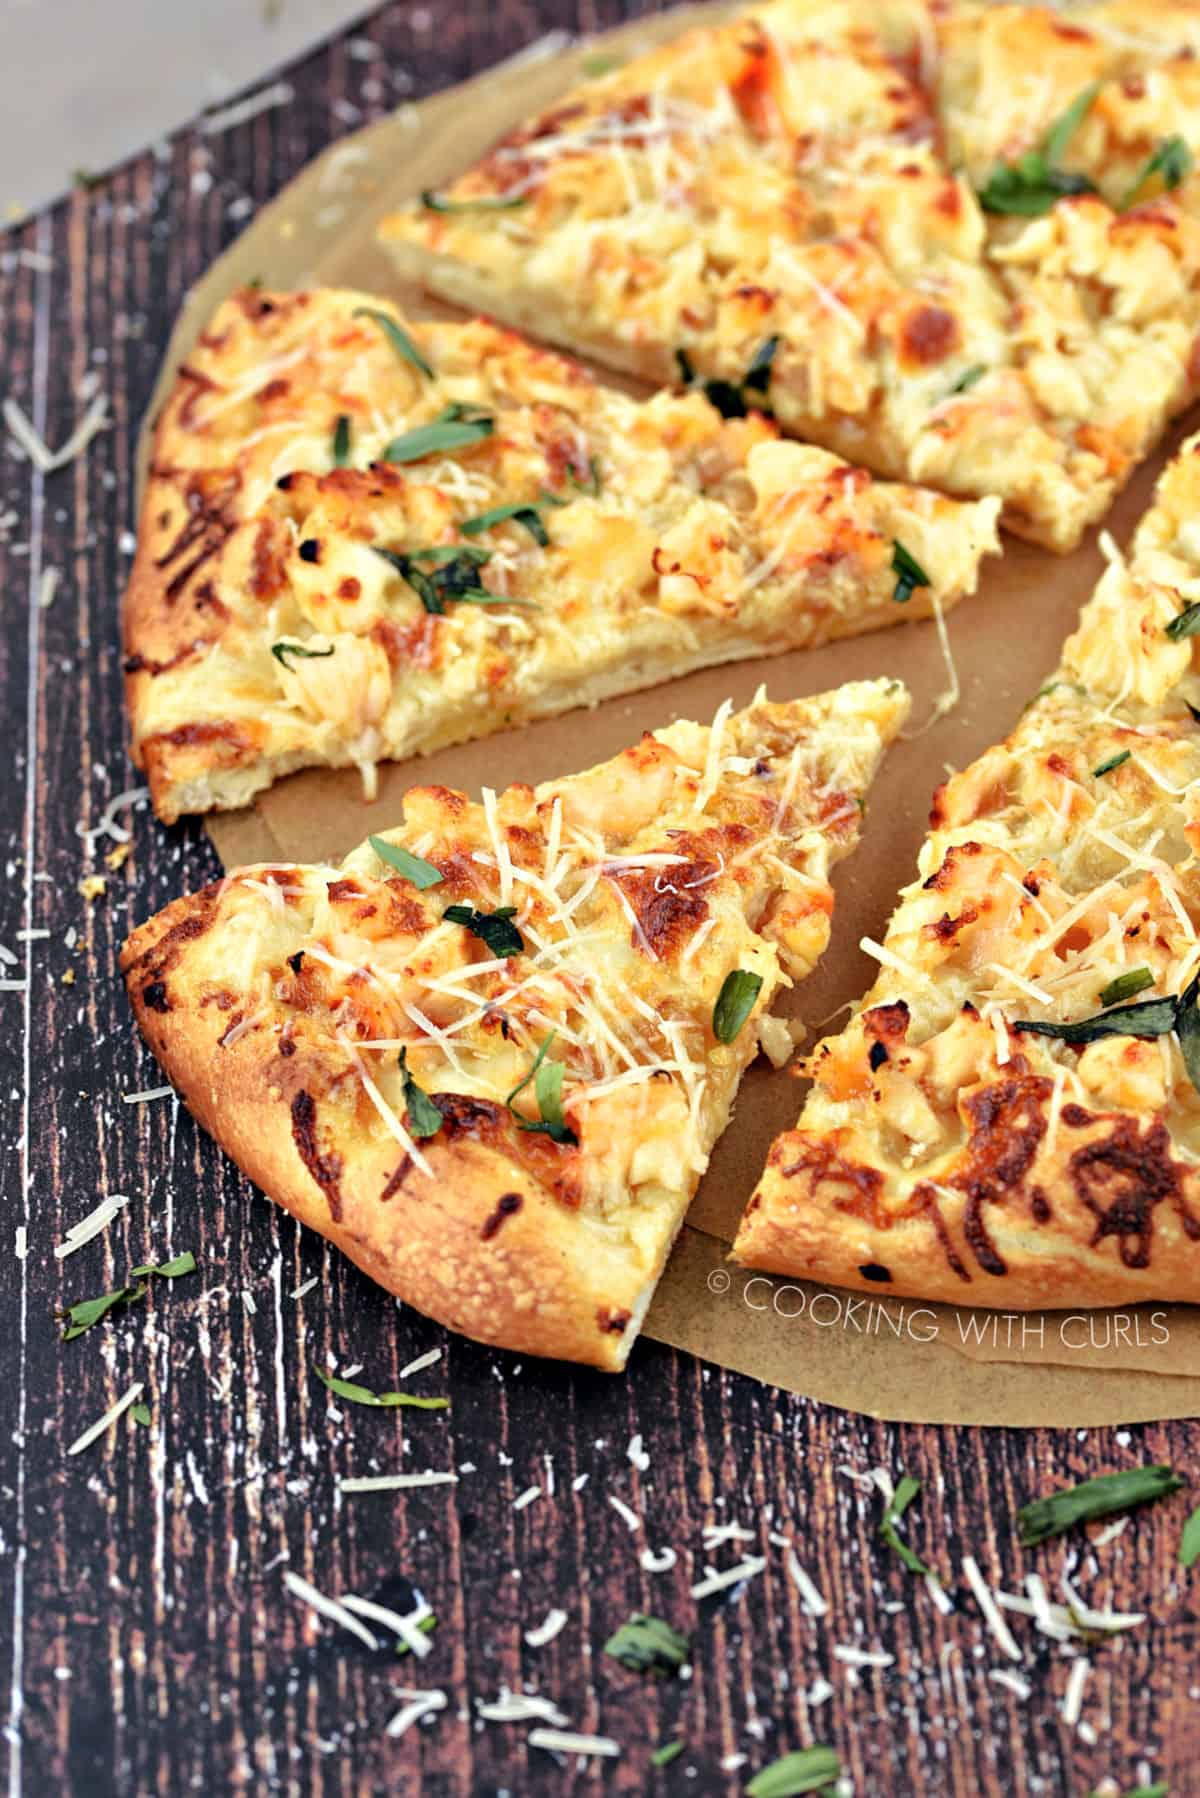 A Lobster Pizza cut into 8 slices sitting on parchment paper circles and sprinkled with tarragon and Parmesan cheese shreds.